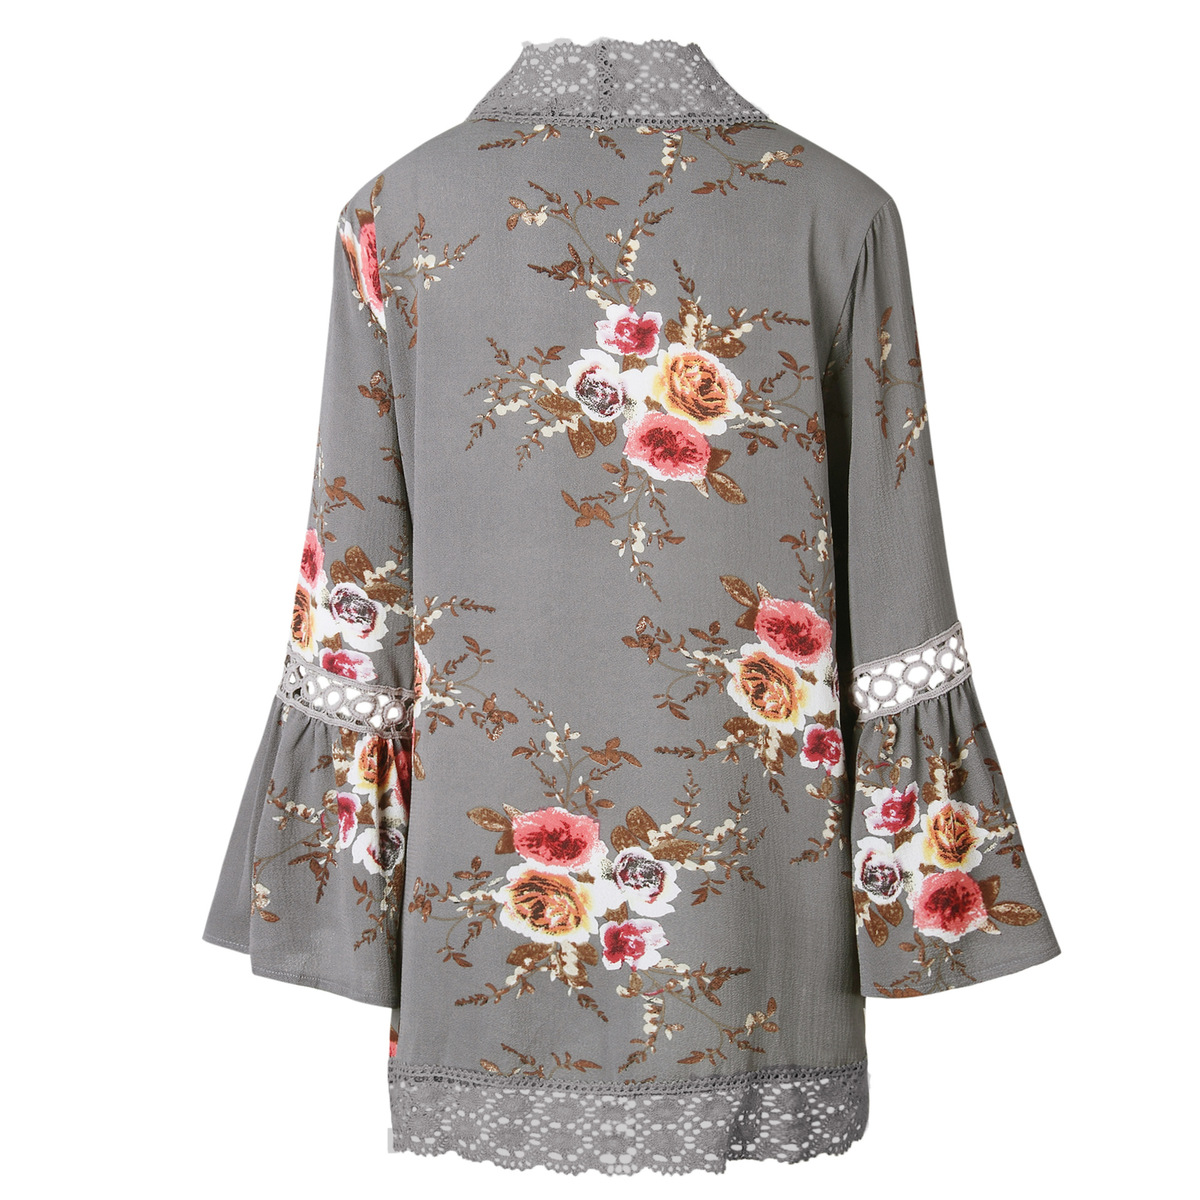 HTB1.d FEbuWBuNjSszgq6z8jVXar Women Plus Size Loose Casual Basic Jackets Female 2018 Autumn Long Flare Sleeve Floral Print Outwear Coat Open Stitch Clothing